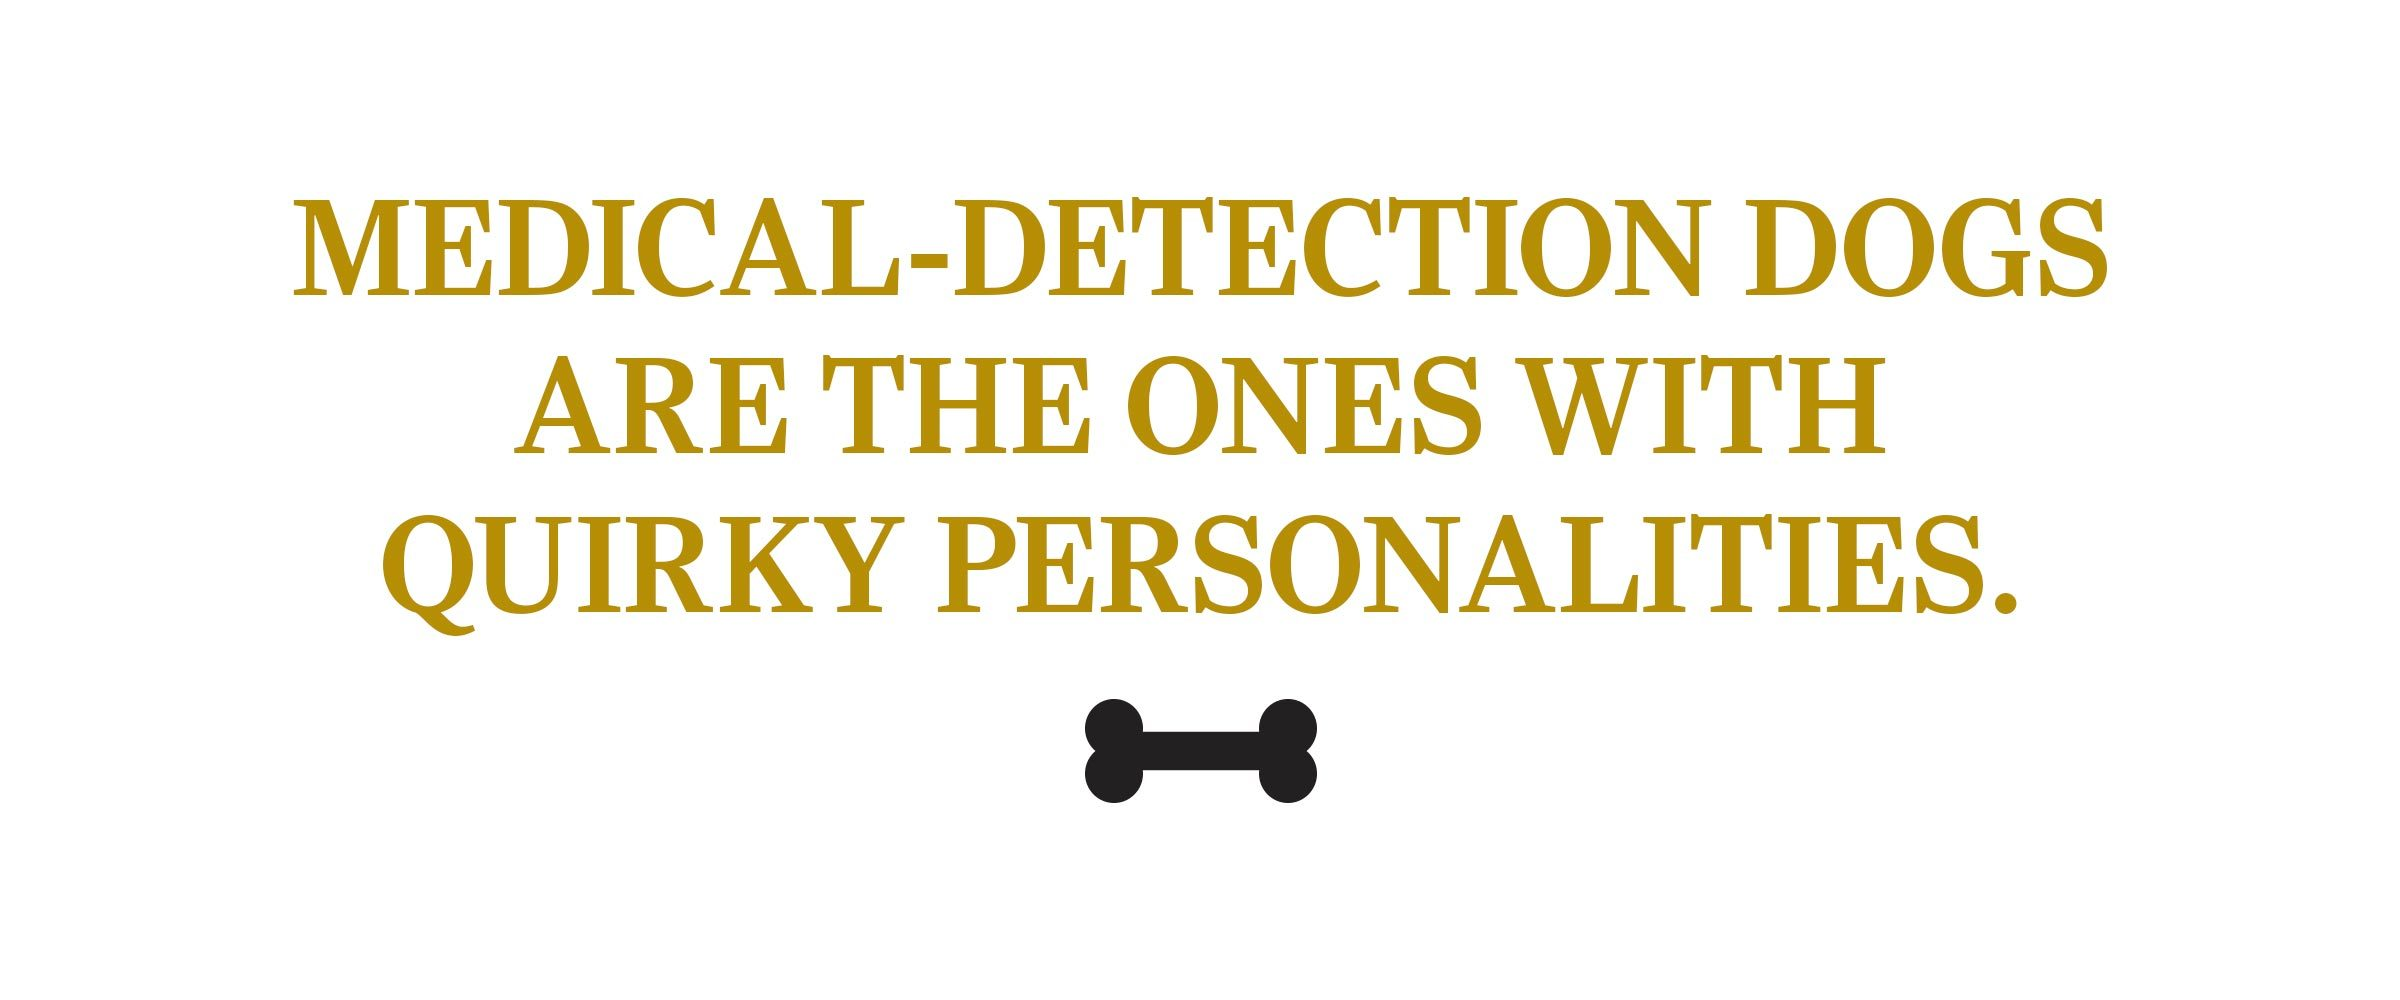 text: Medical-detection dogs are the ones with quirky personalities.